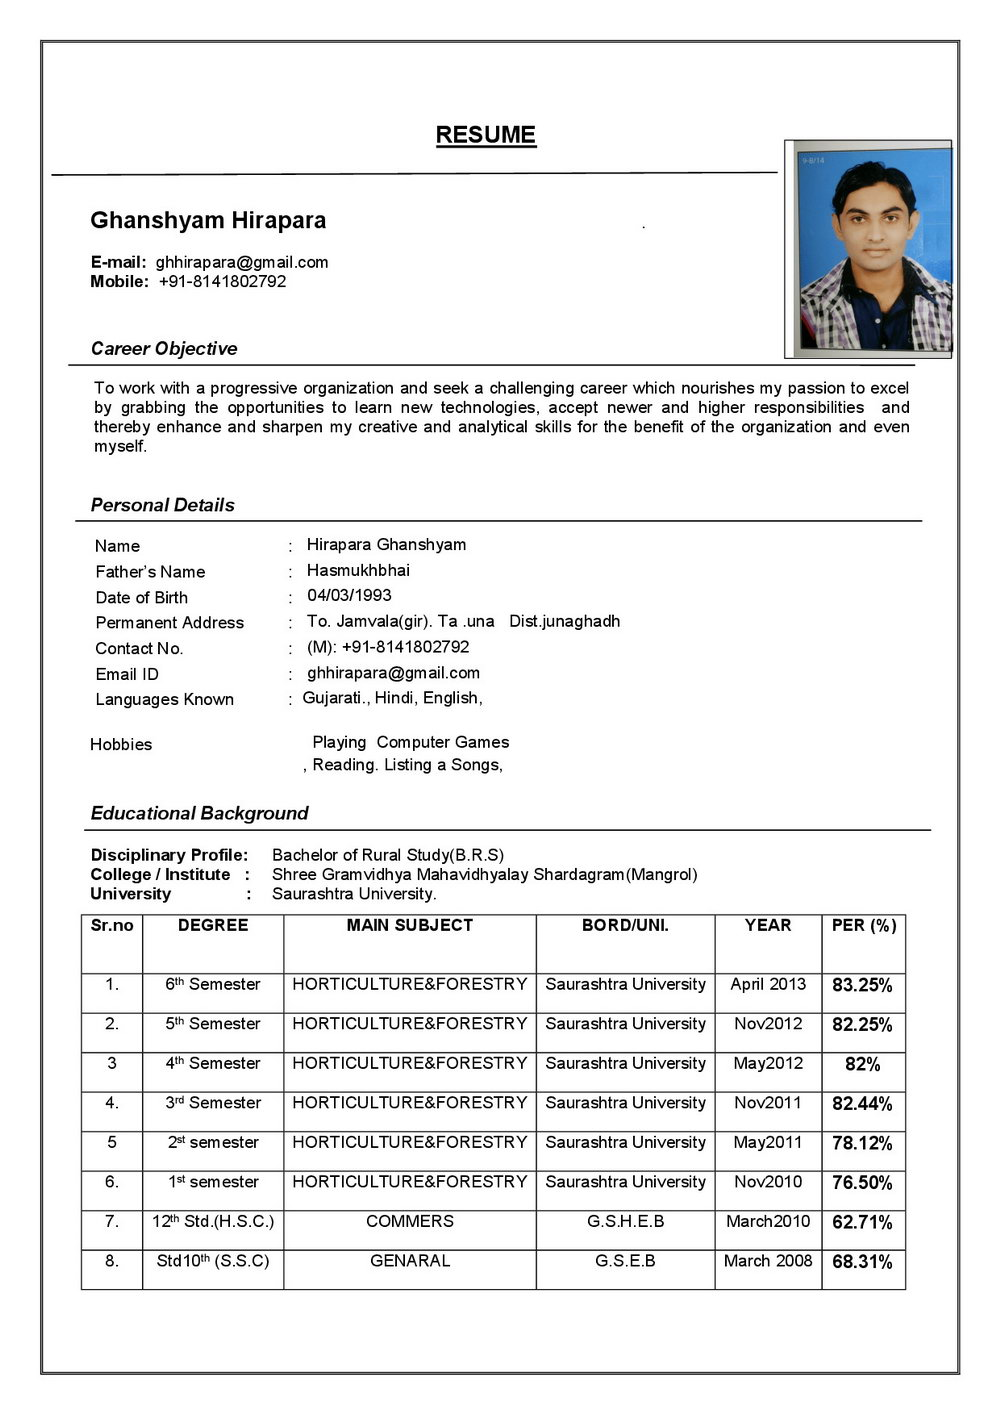 Resume Format For Experienced Candidates Free Download